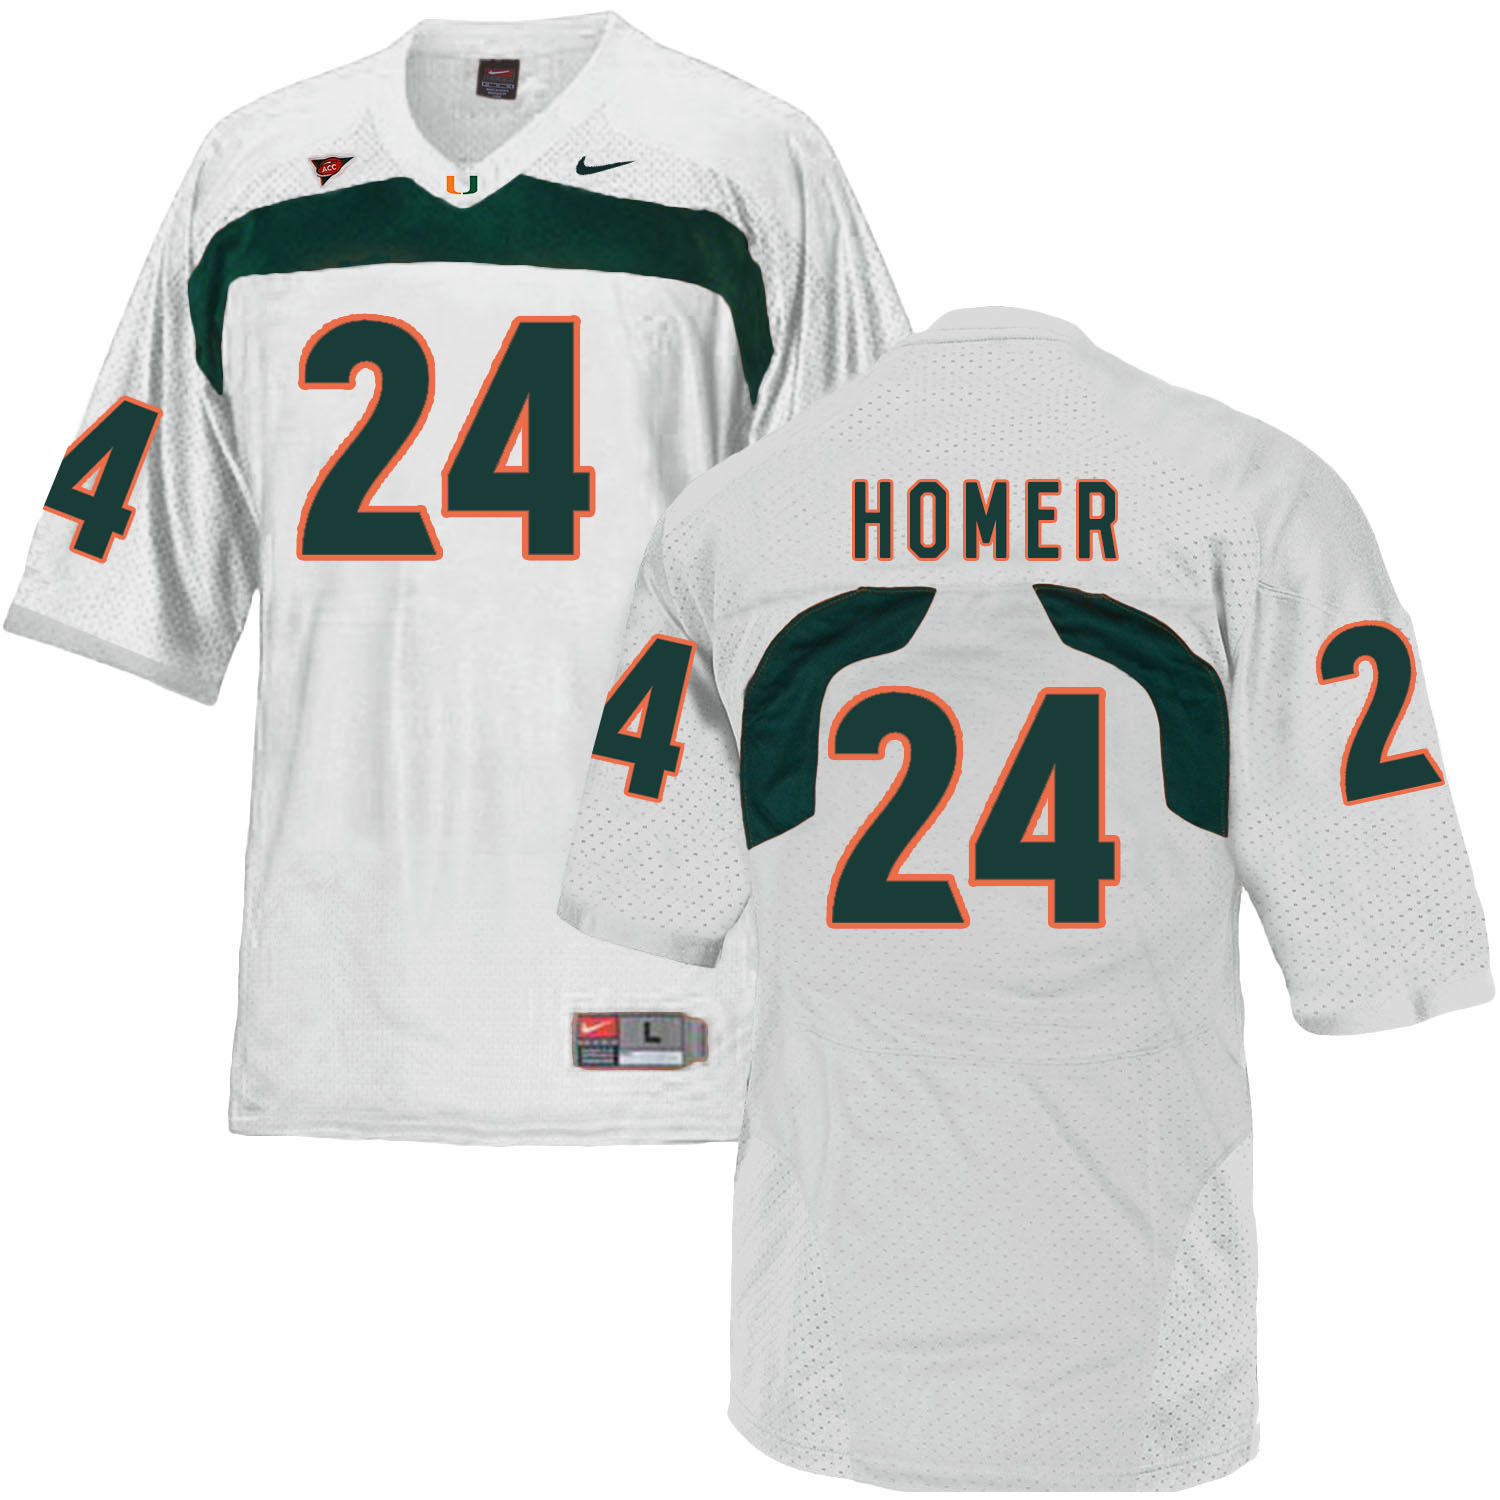 Miami Hurricanes 24 Travis Homer White College Football Jersey